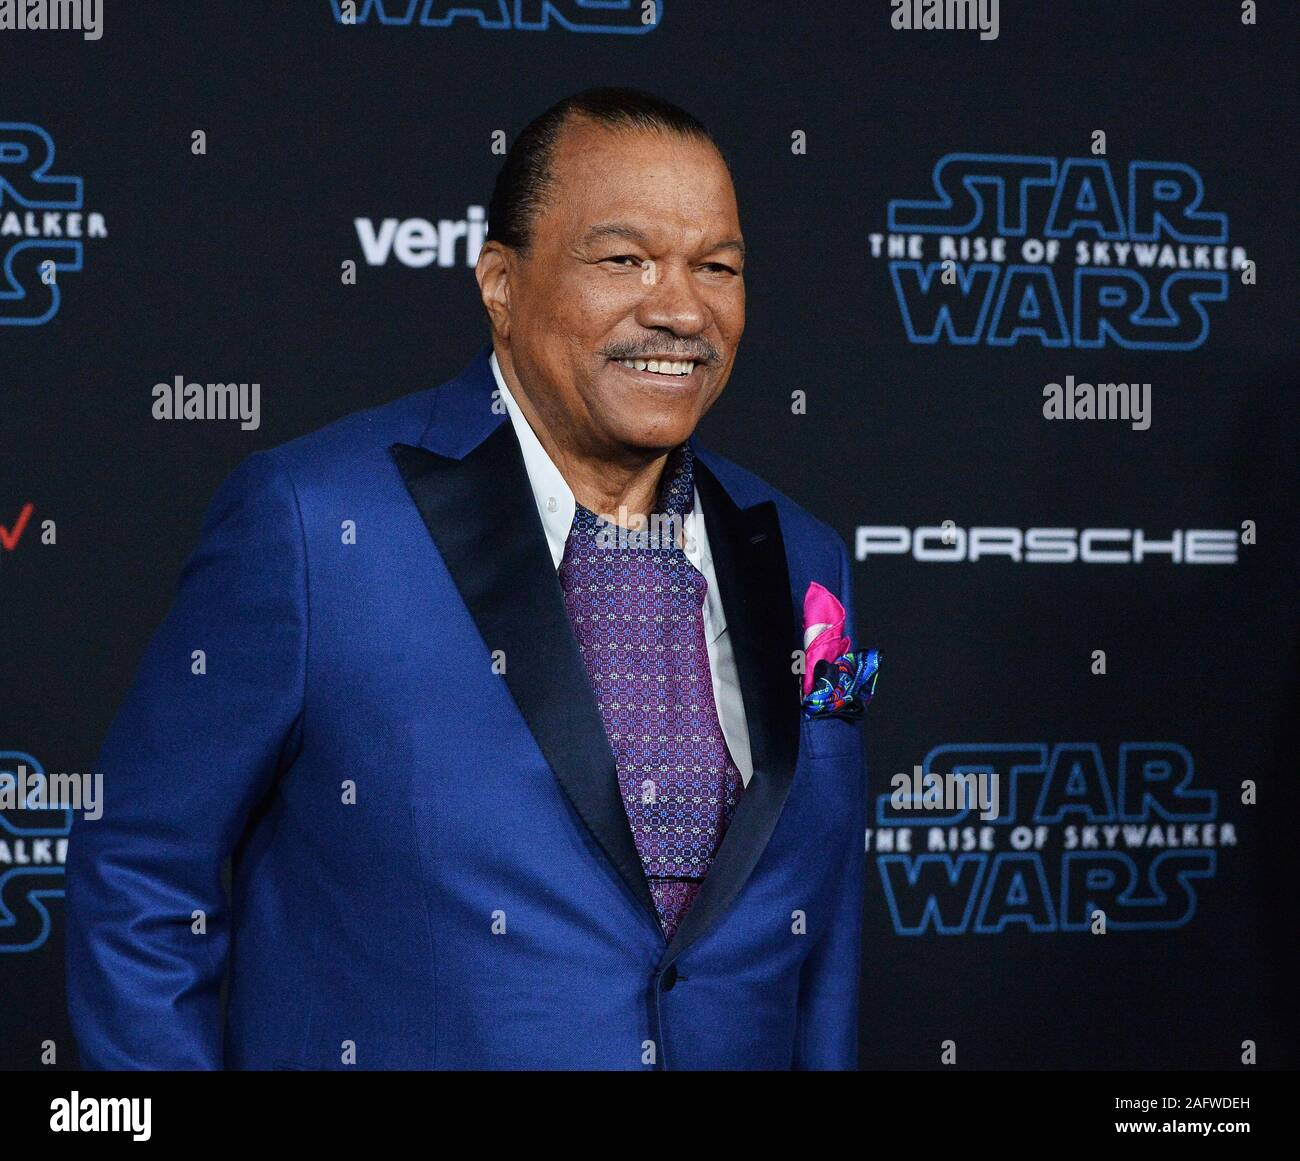 Los Angeles United States 17th Dec 2019 Cast Member Billy Dee Williams Attends The Premiere The Motion Picture Sci Fi Fantasy Star Wars The Rise Of Skywalker At The Tcl Chinese Theatre In